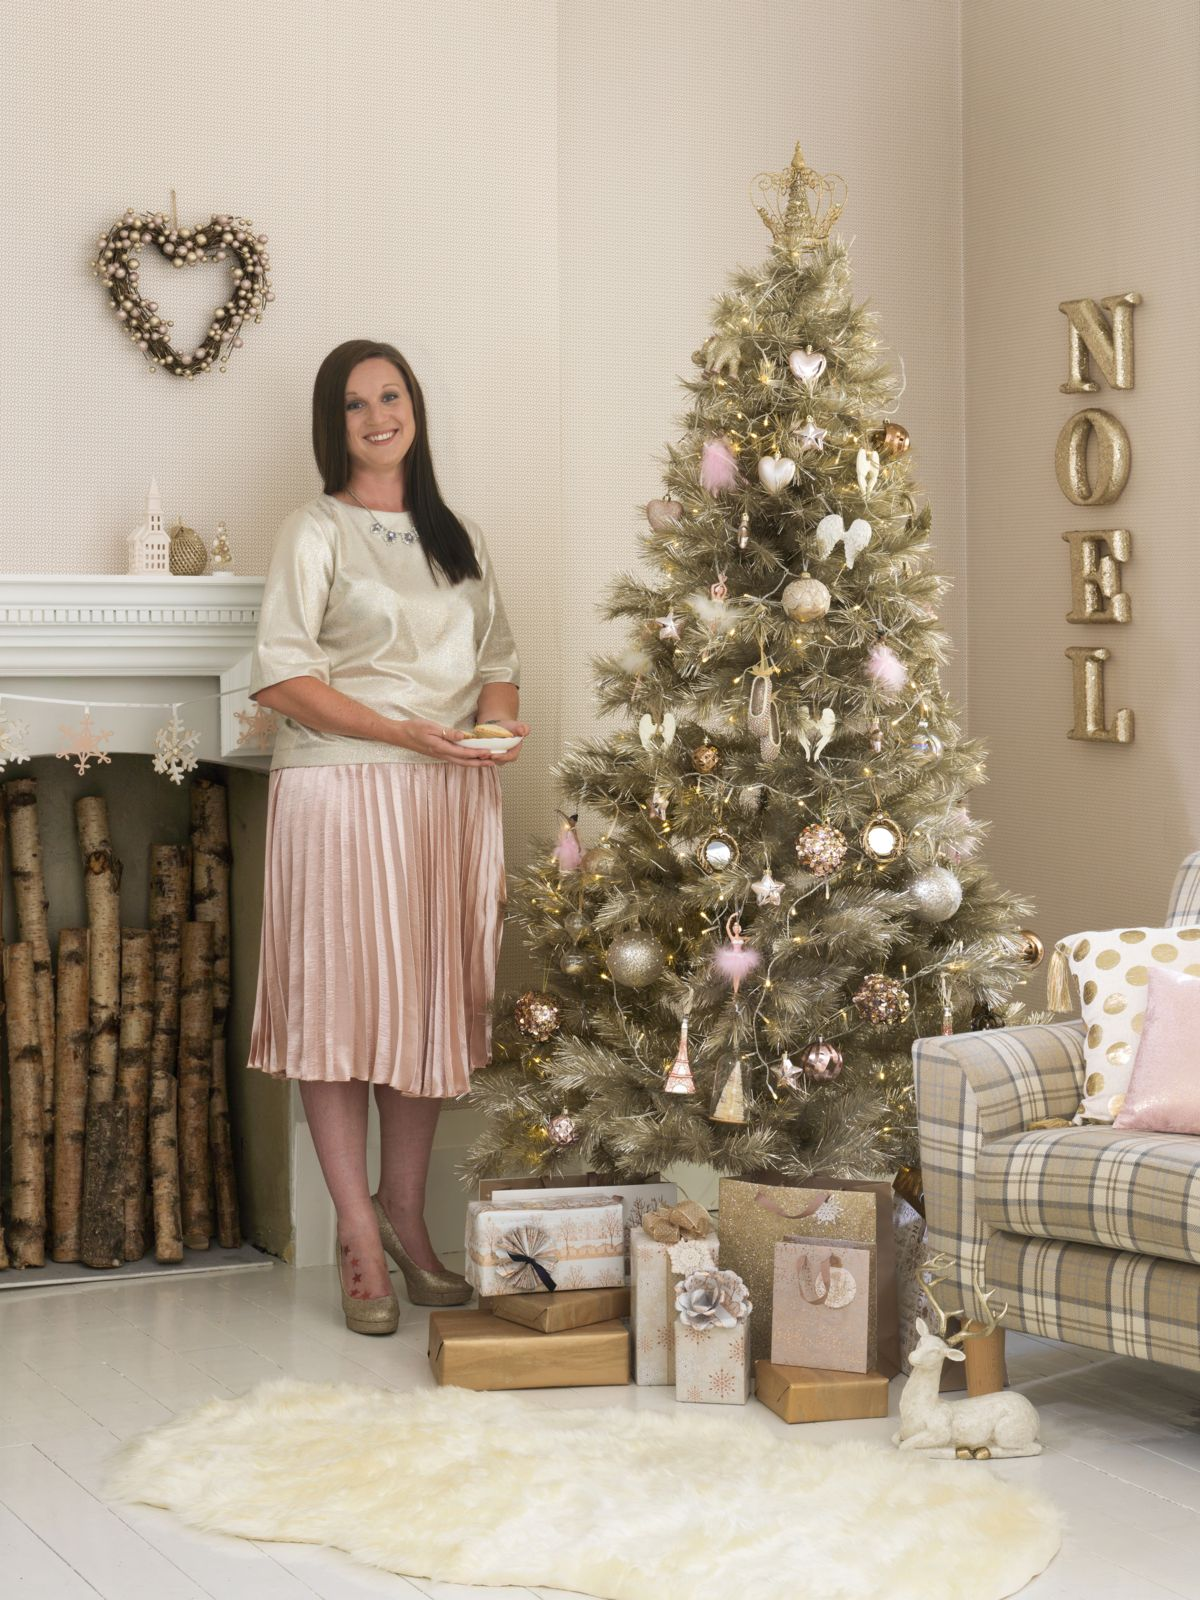 Home at Asda Christmas tree look. To see the full